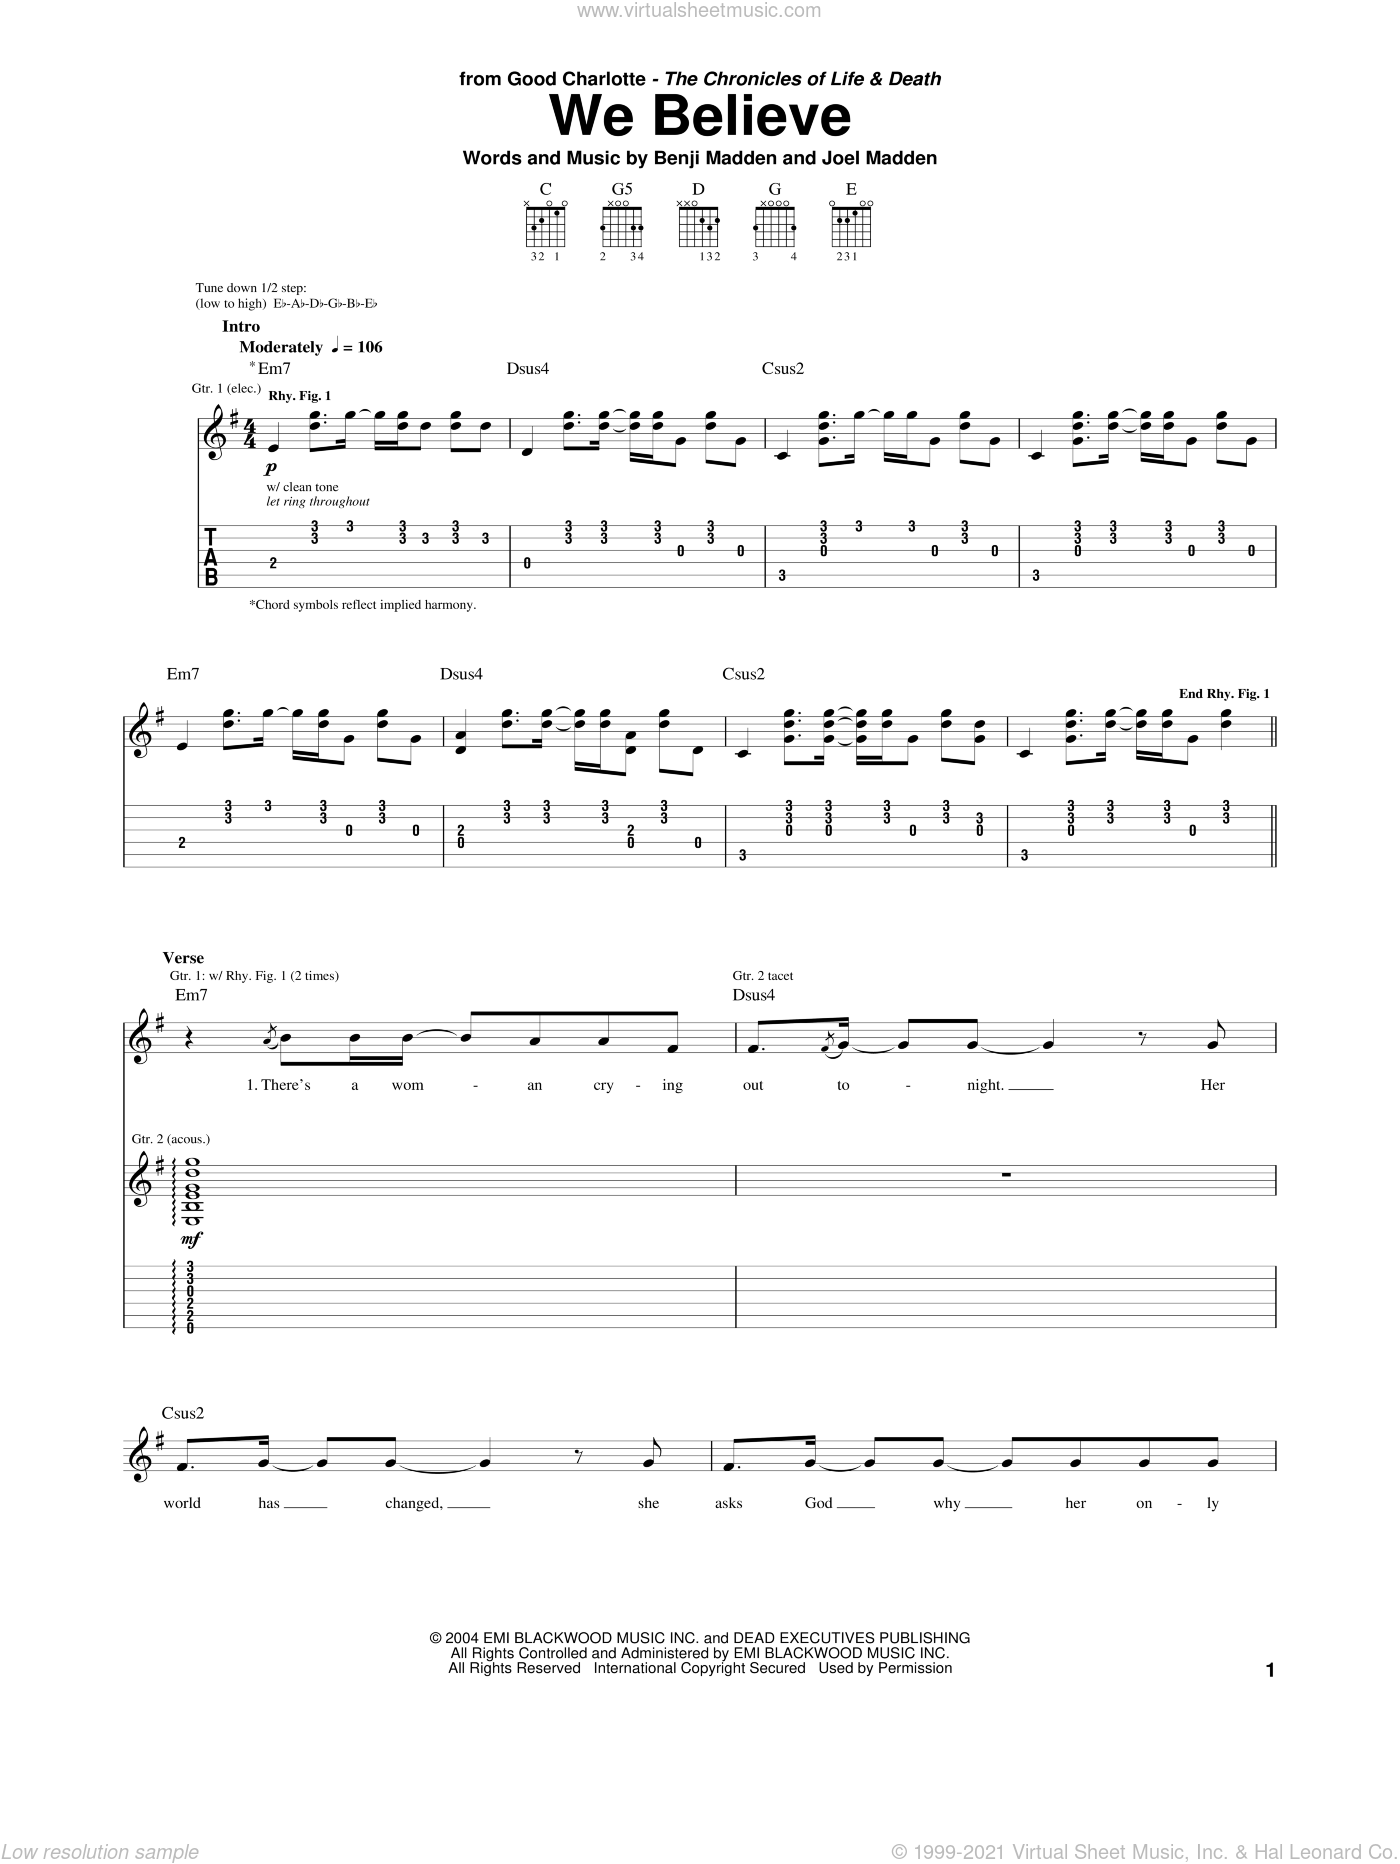 We Believe sheet music for guitar (tablature) by Joel Madden